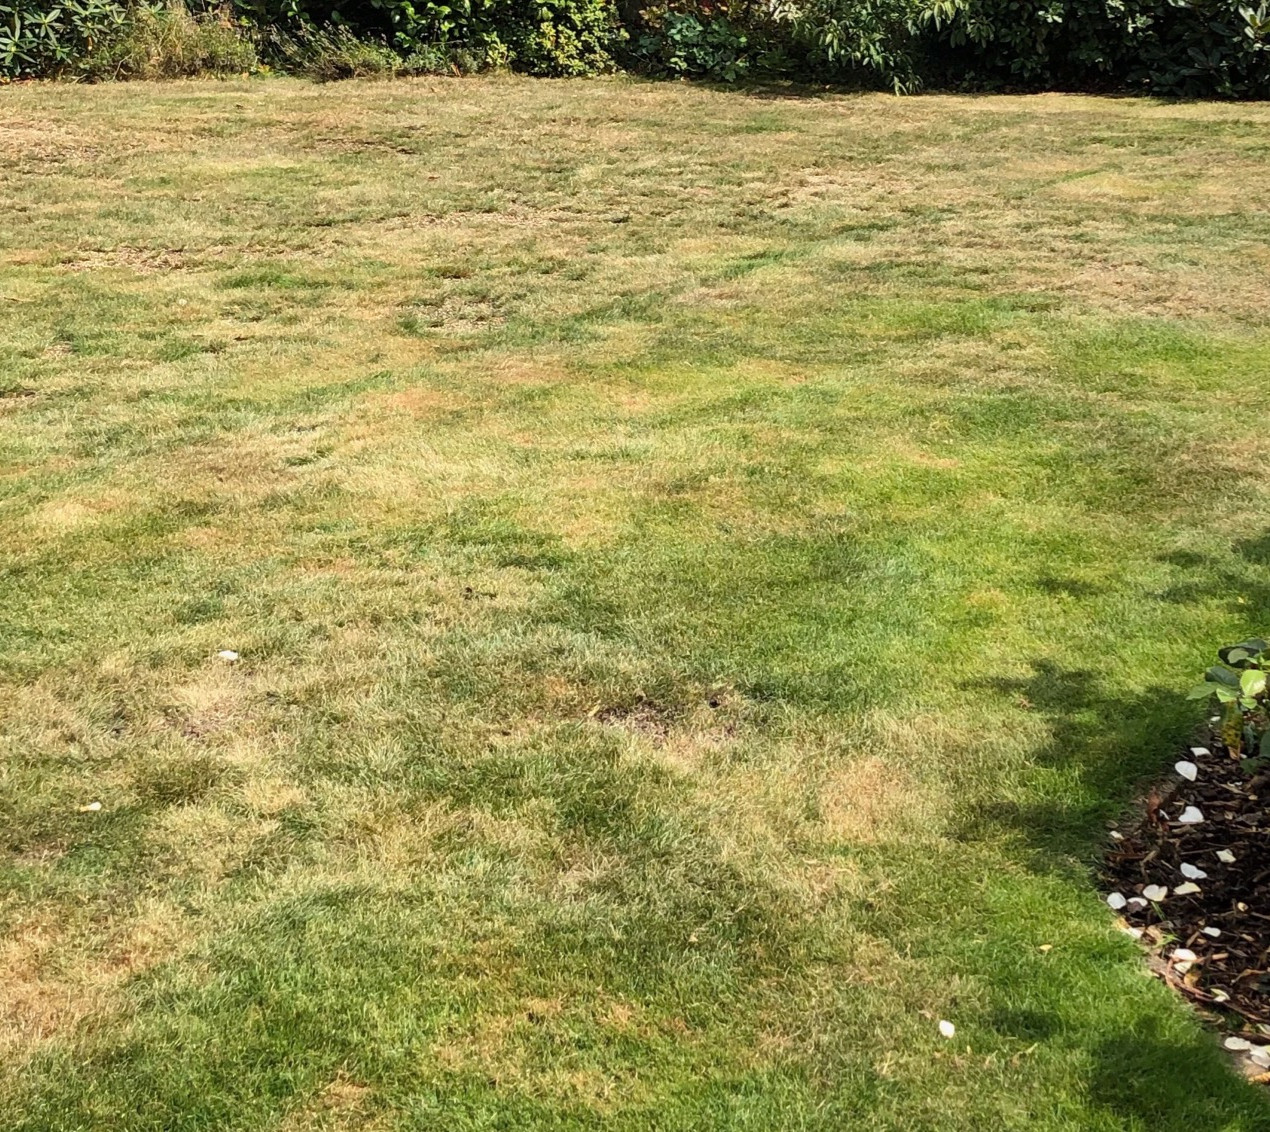 Dry brown lawn in Summer